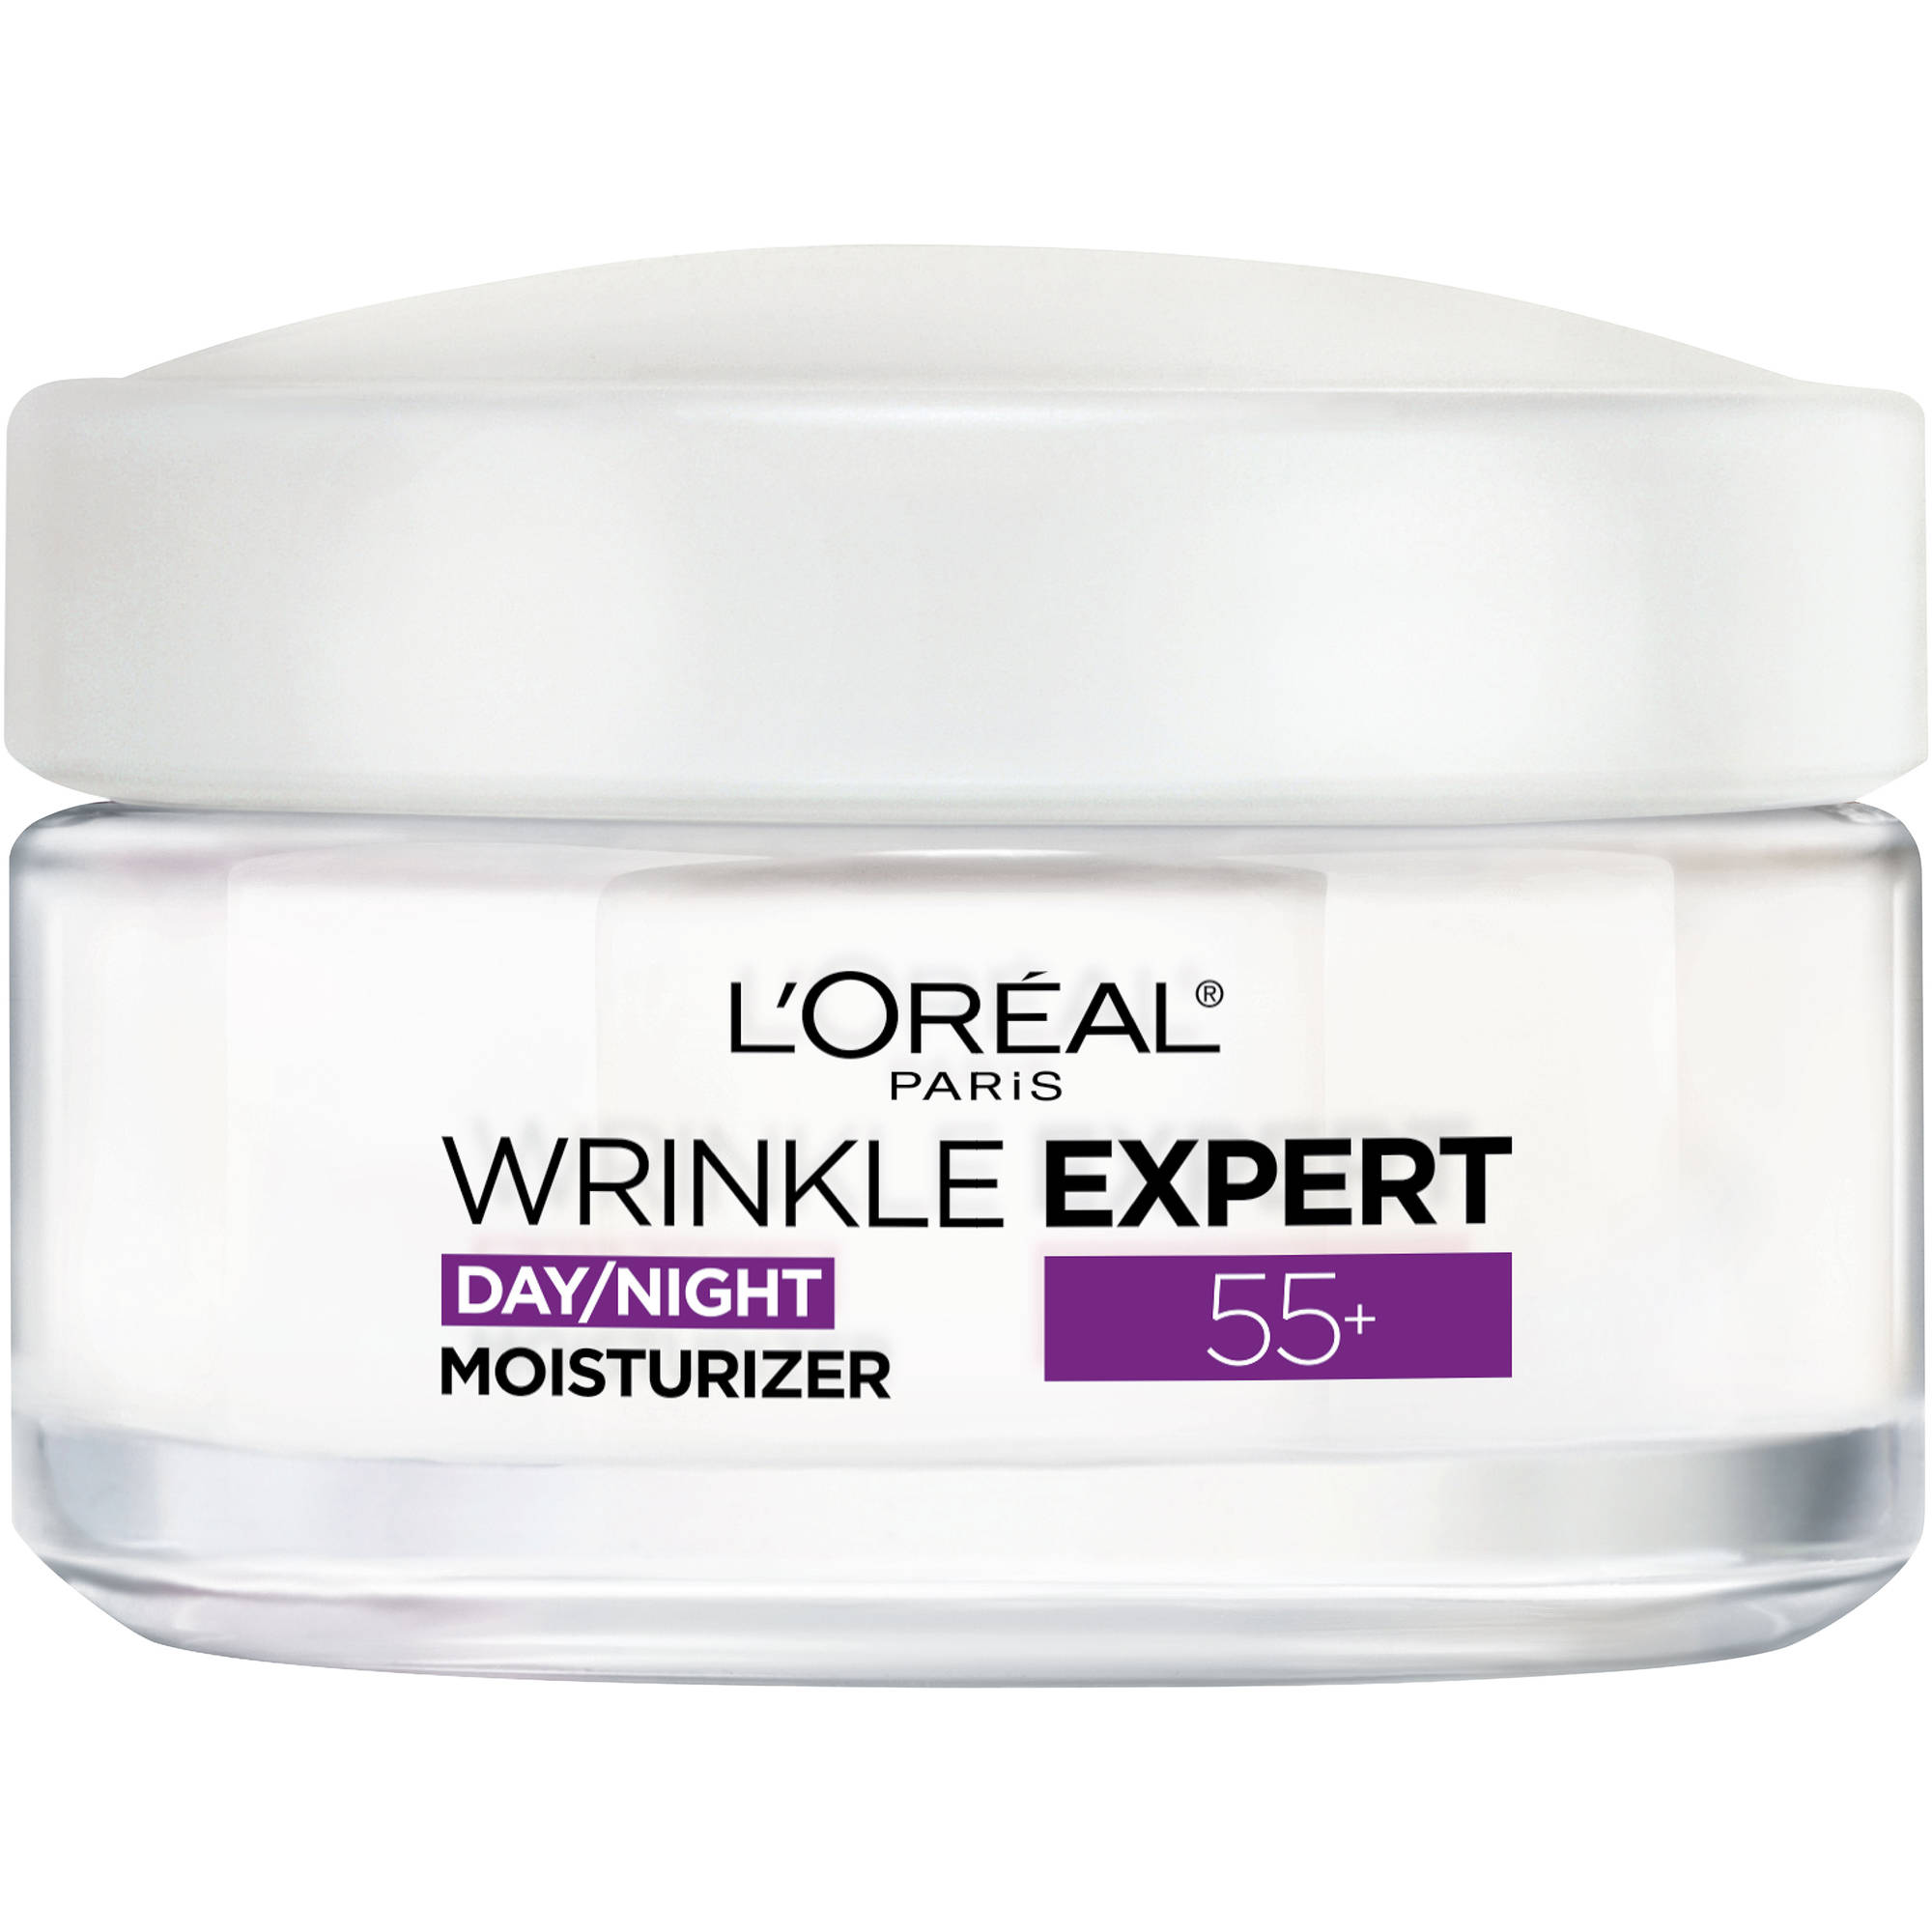 L'Oreal Paris Wrinkle Expert 55+ Day/Night Moisturizer, 1.7 oz